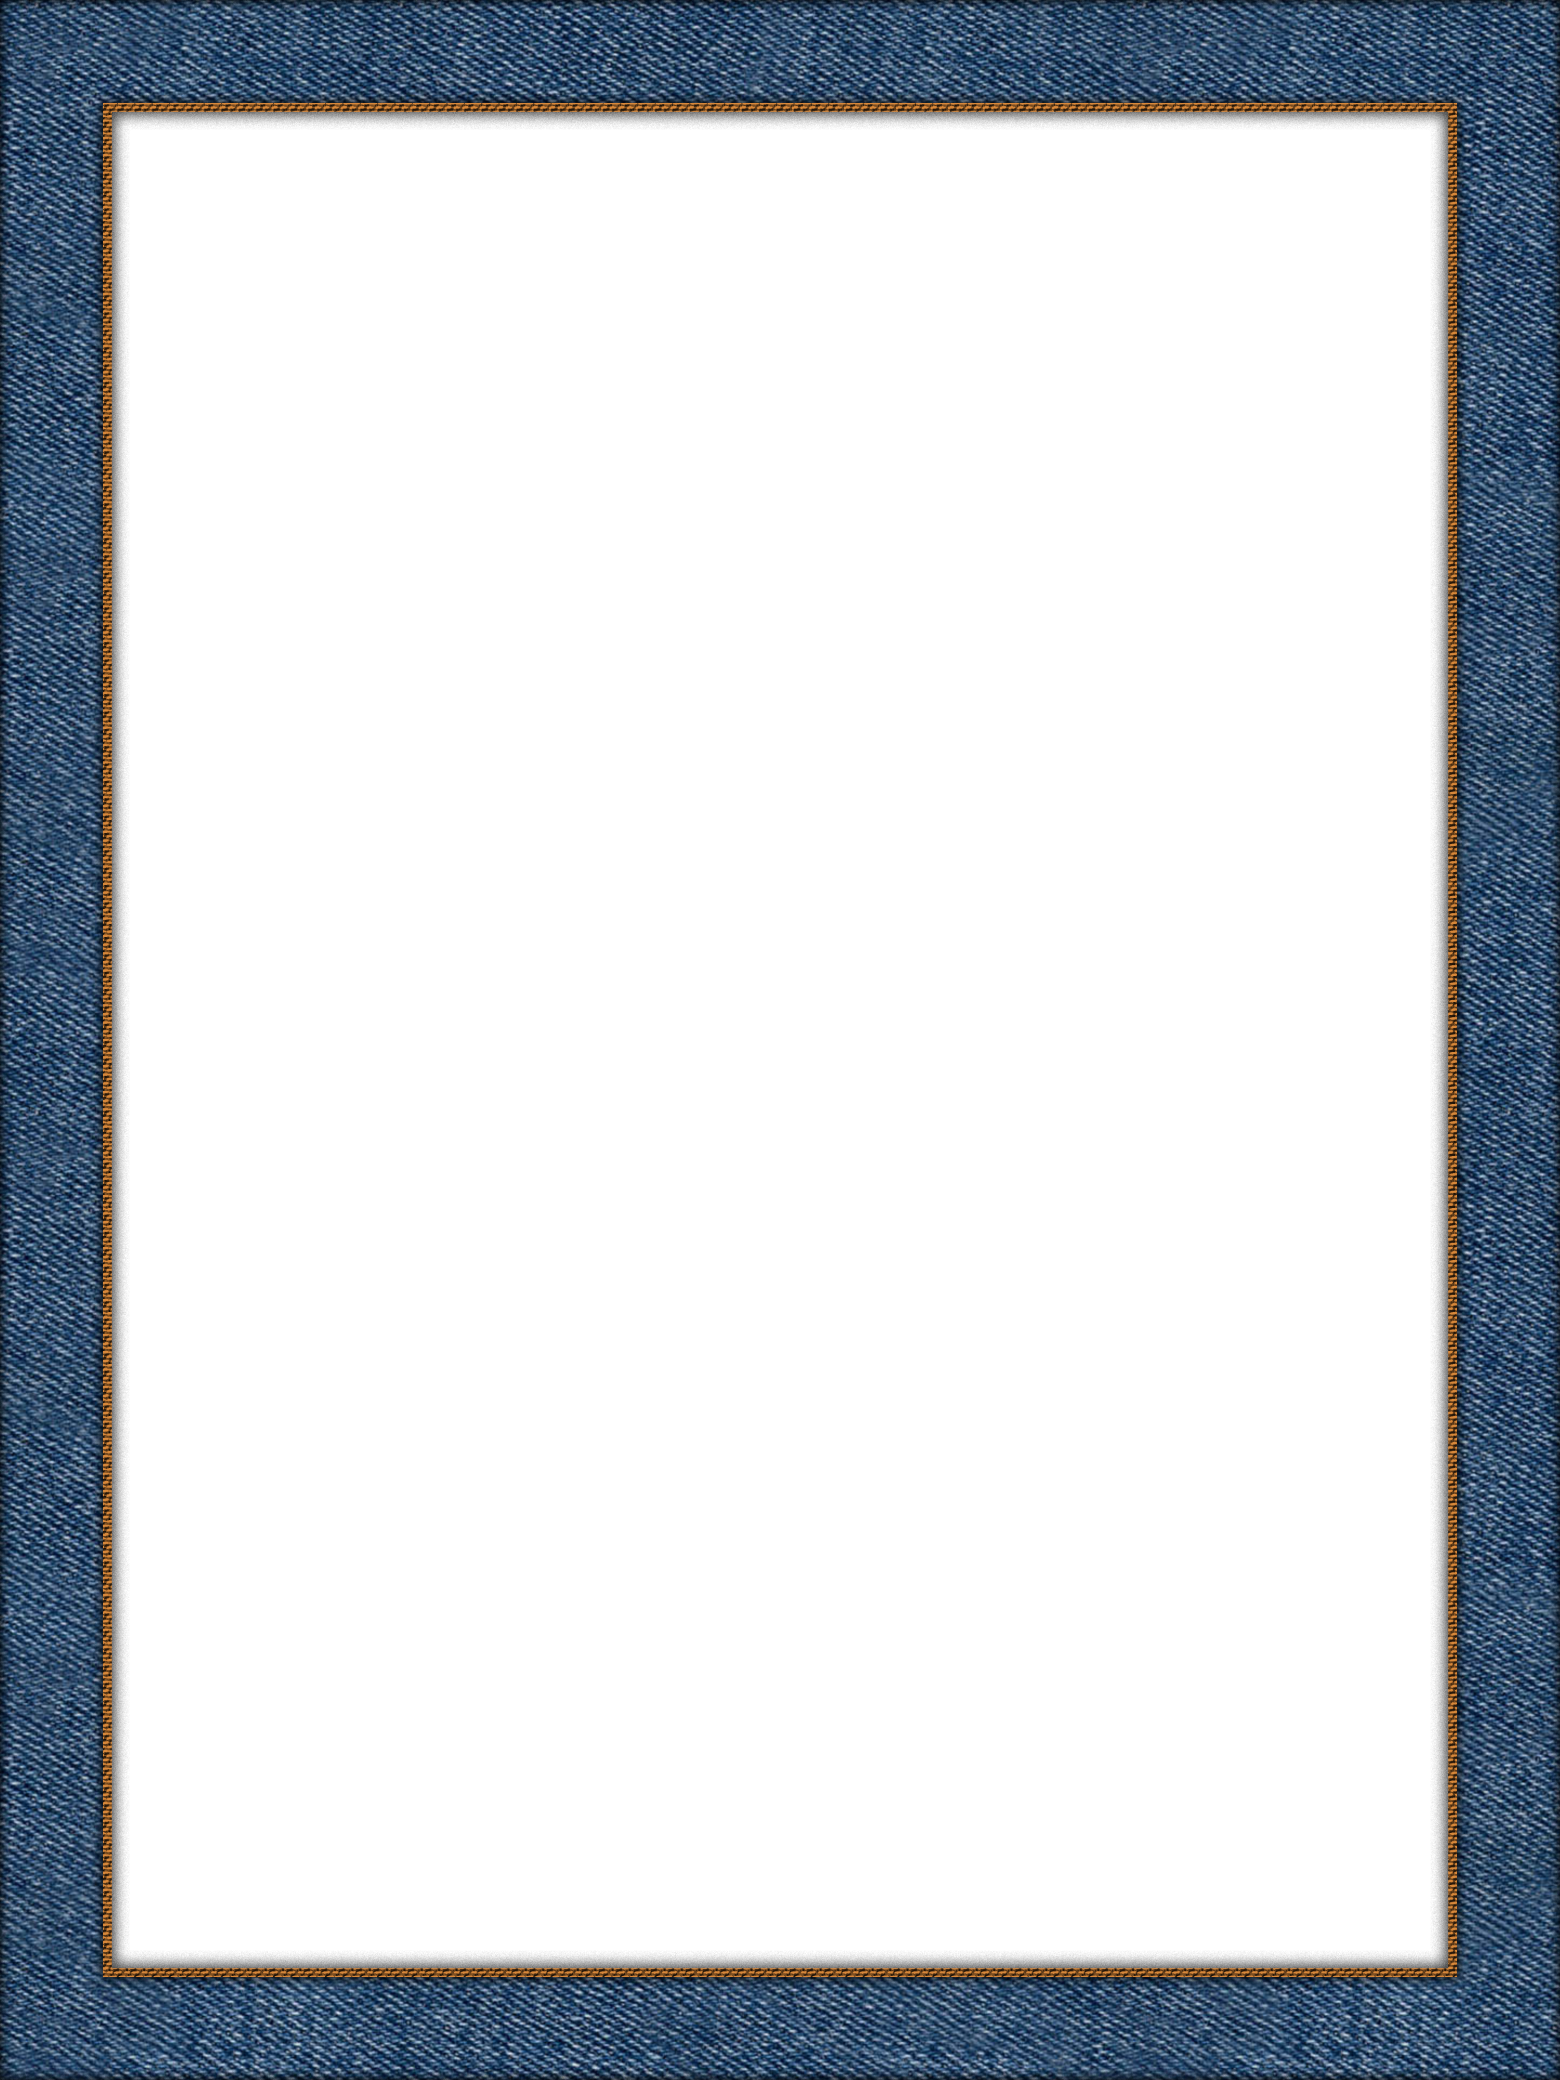 Frame background png. Photo transparent template clean